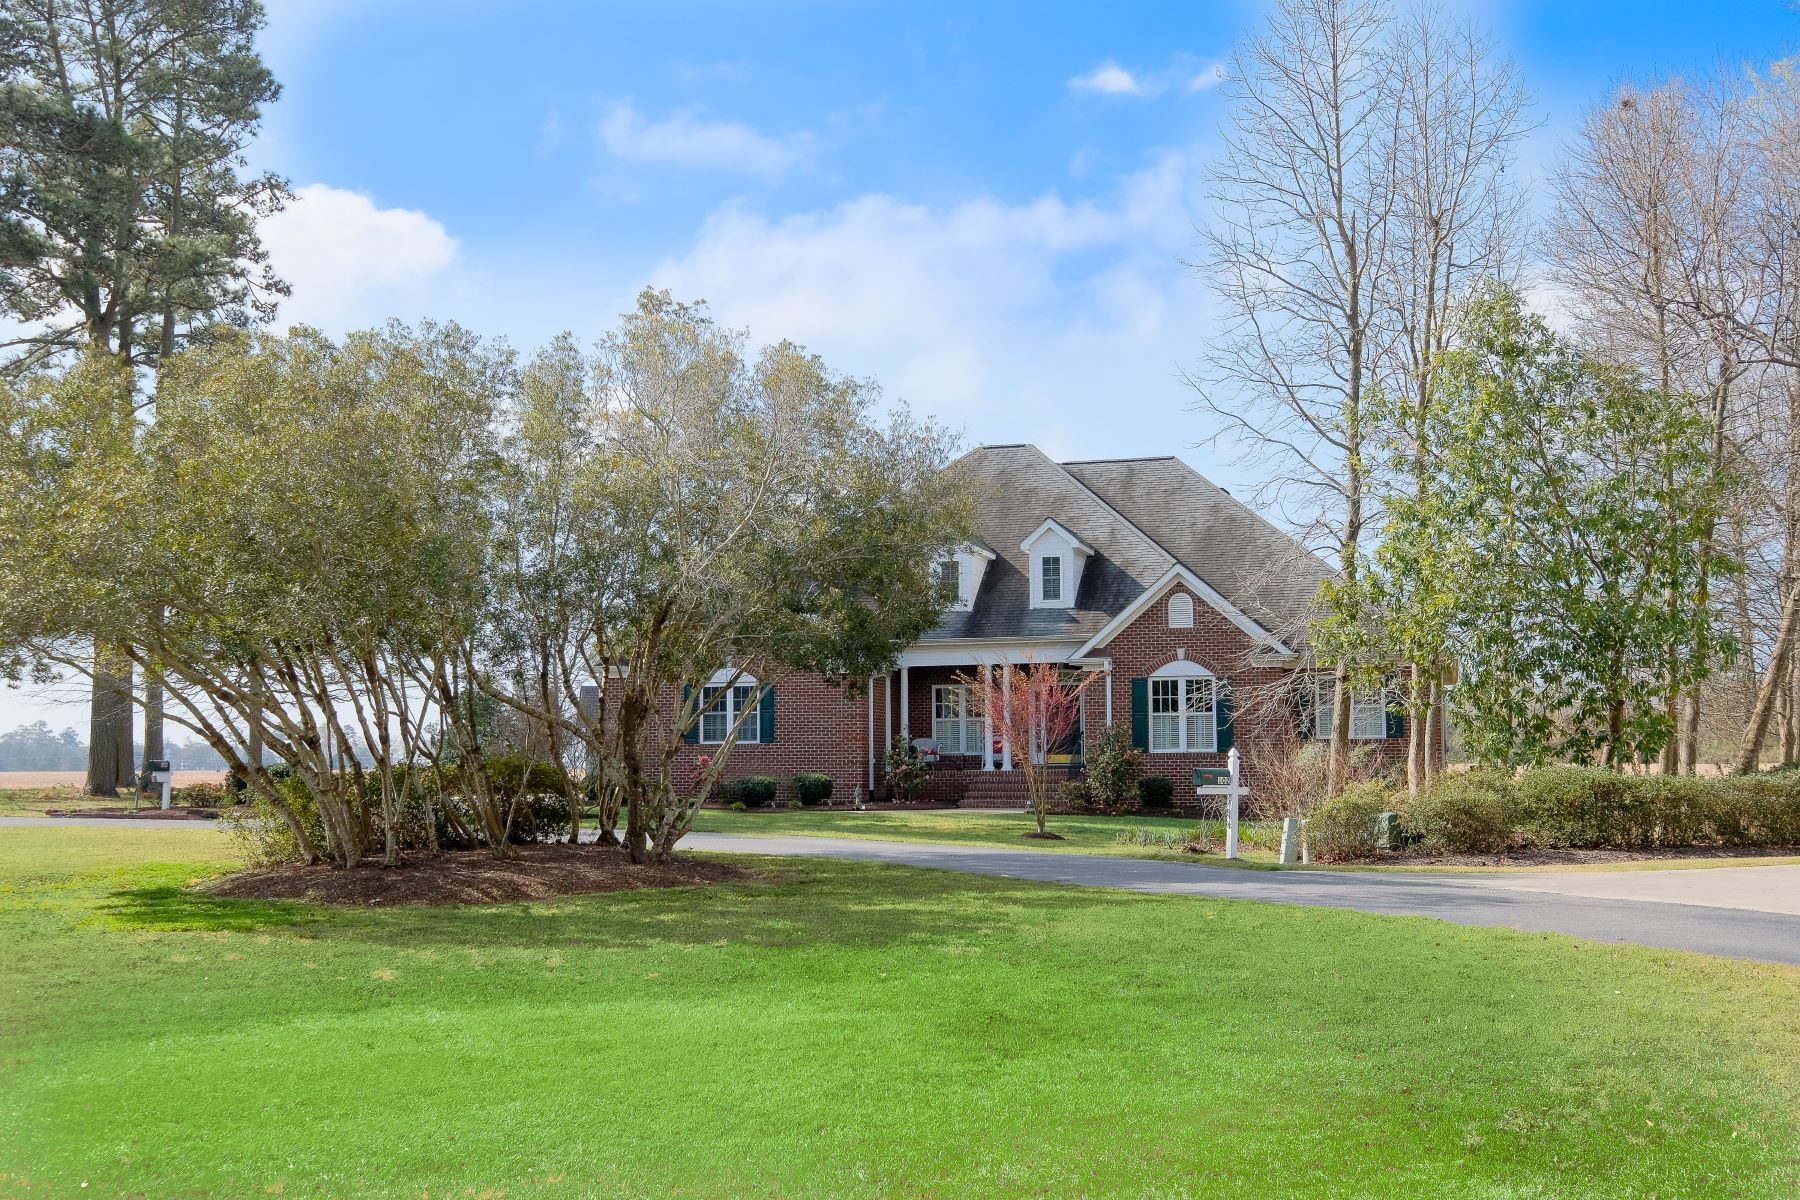 Single Family Home for Sale at COMFORTABLE LIVING IN EDENTON BAY 104 Brickell's Glade Circle, Edenton, North Carolina, 27932 United States